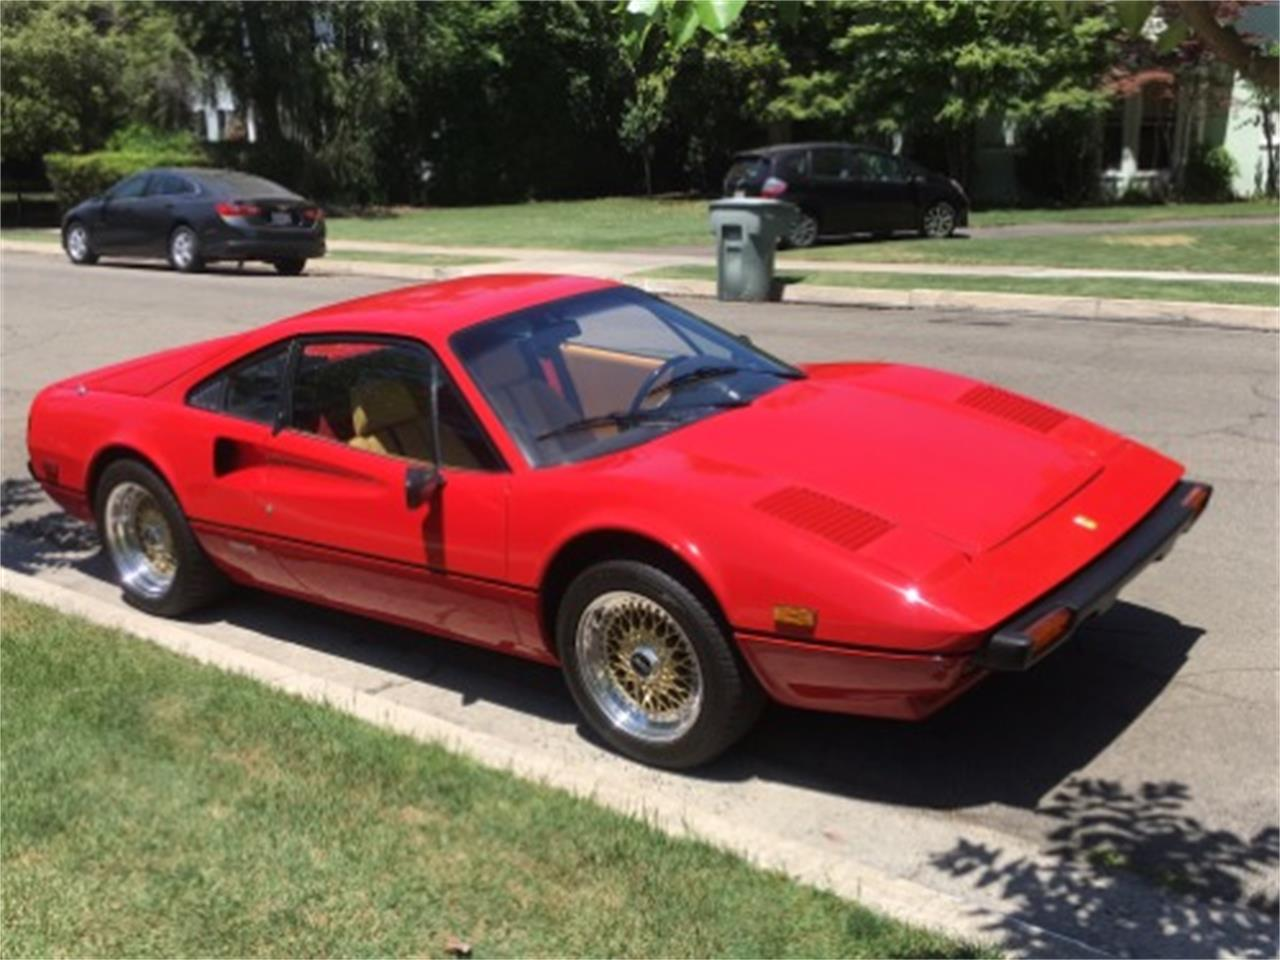 1976 Ferrari 308 GTBI (CC-1312340) for sale in Astoria, New York